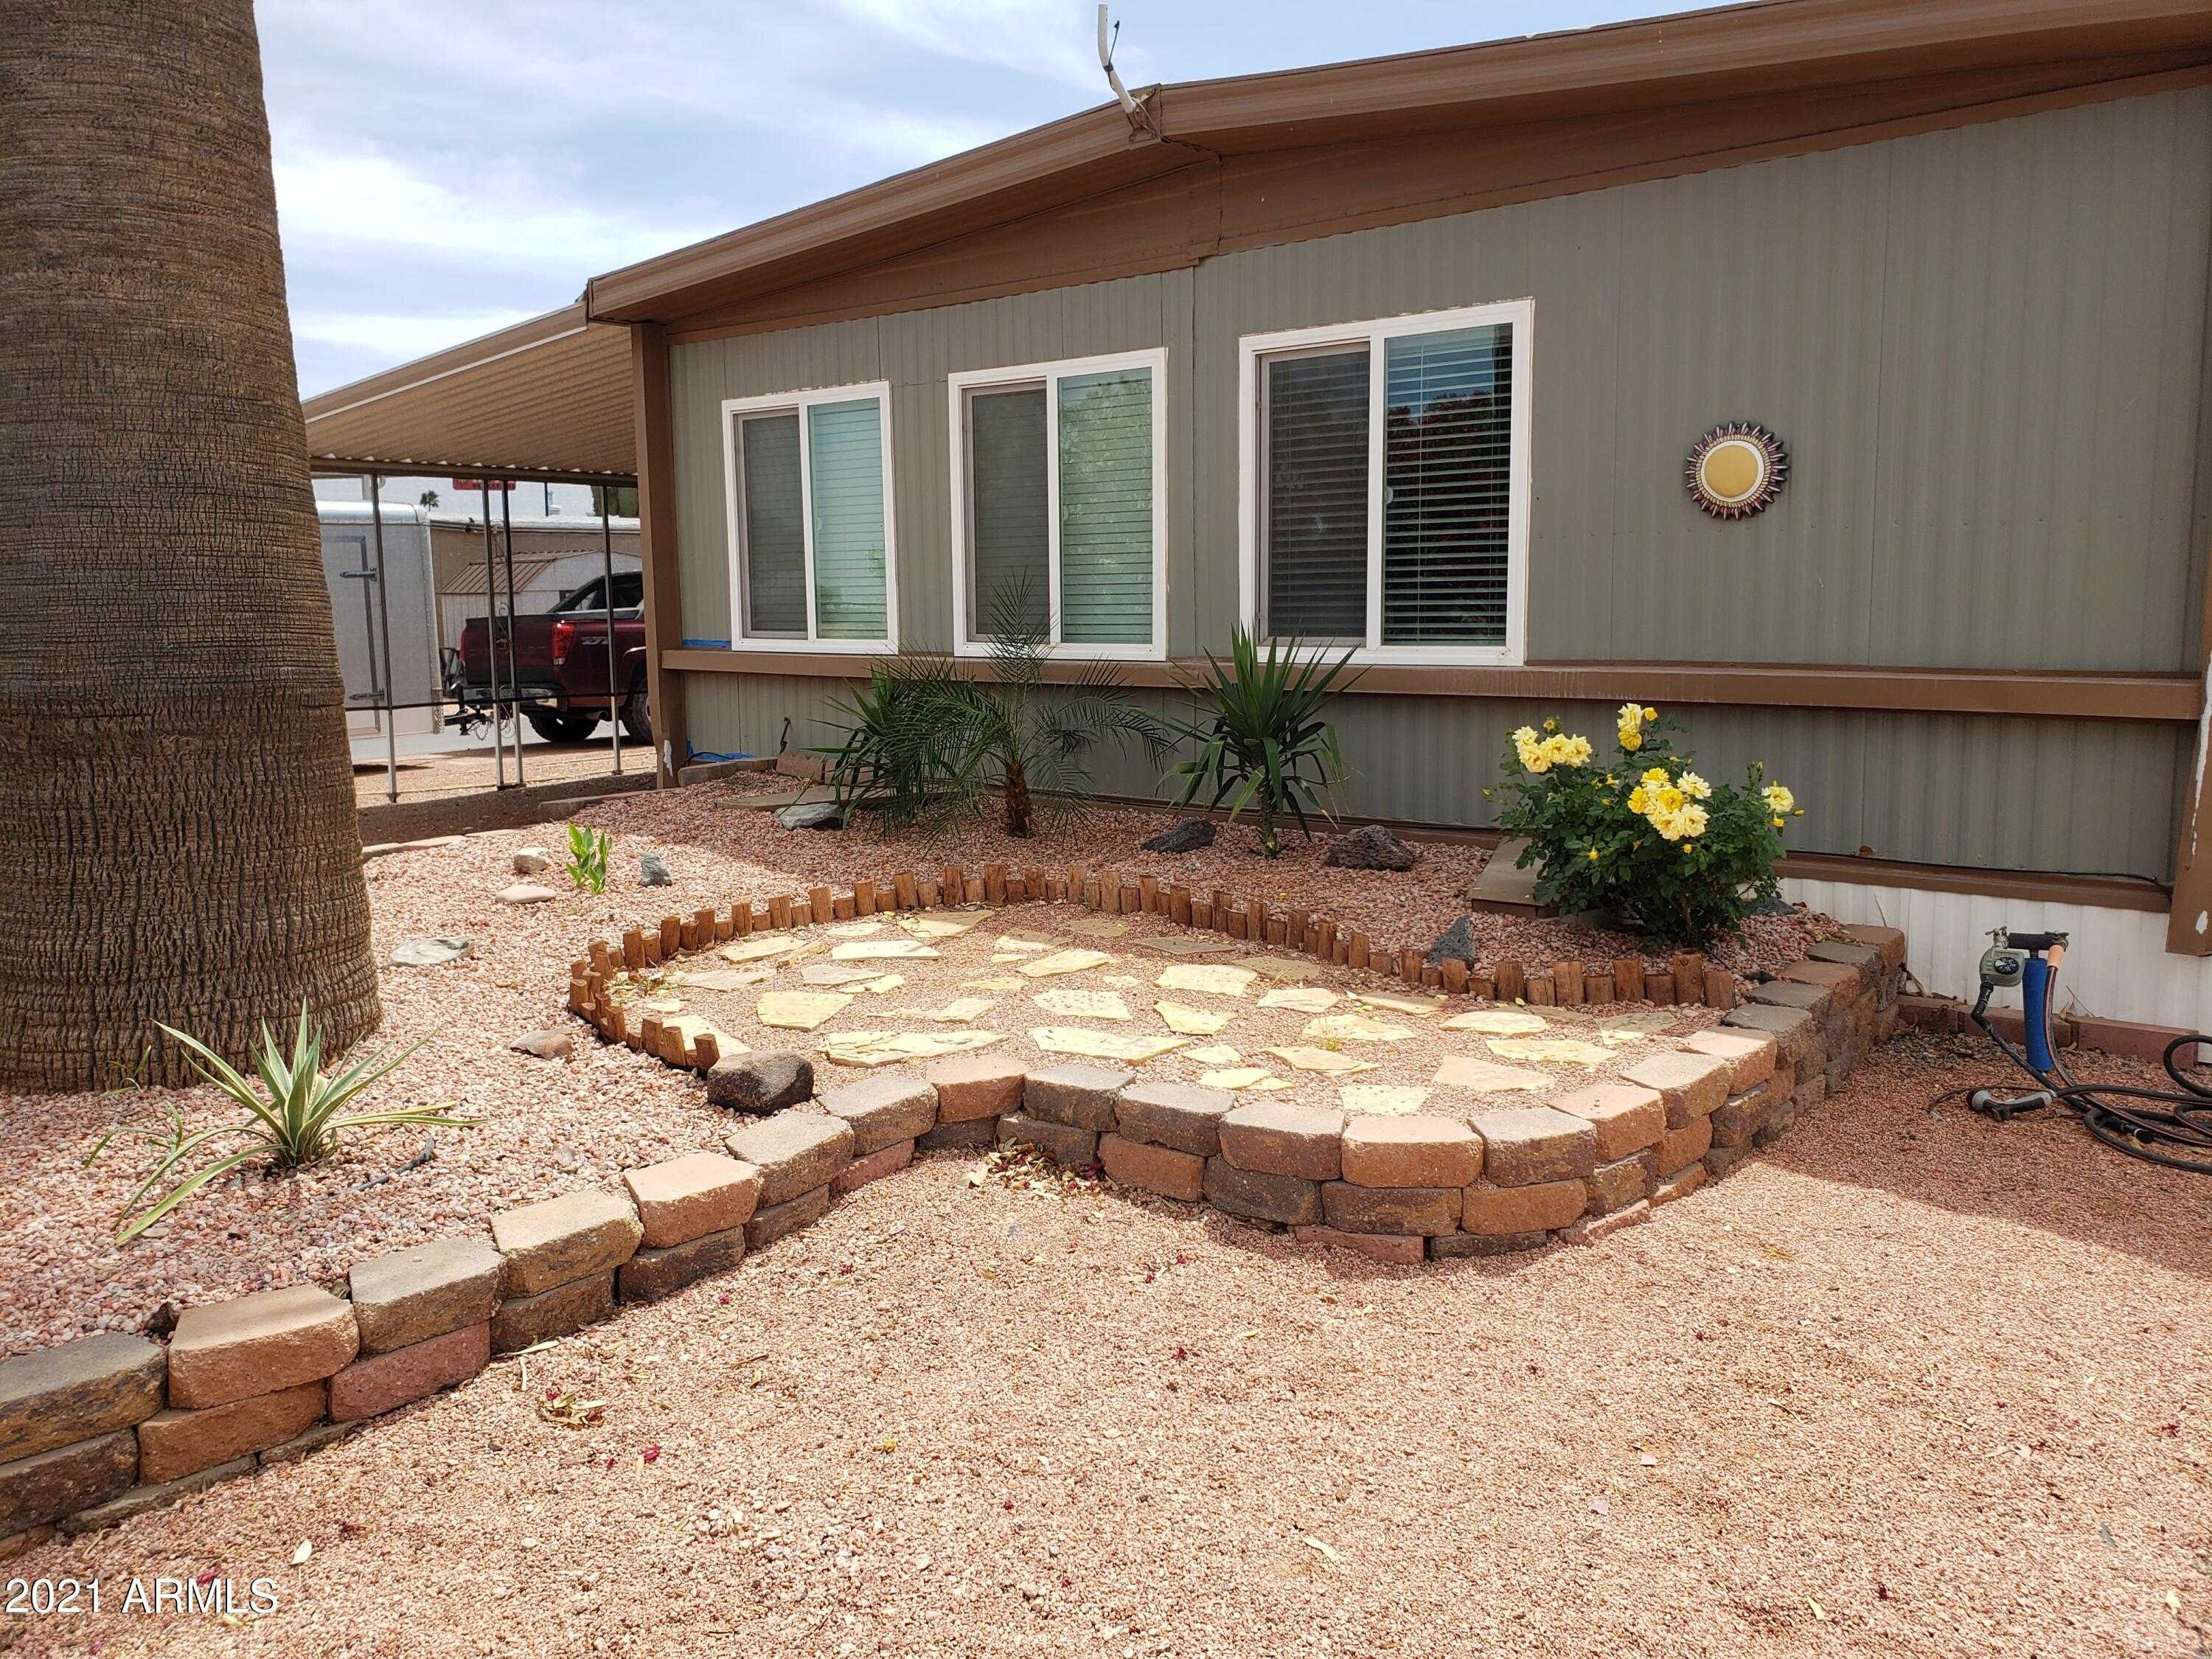 $55,000 - 2Br/2Ba -  for Sale in S13 T7s R6e, Eloy